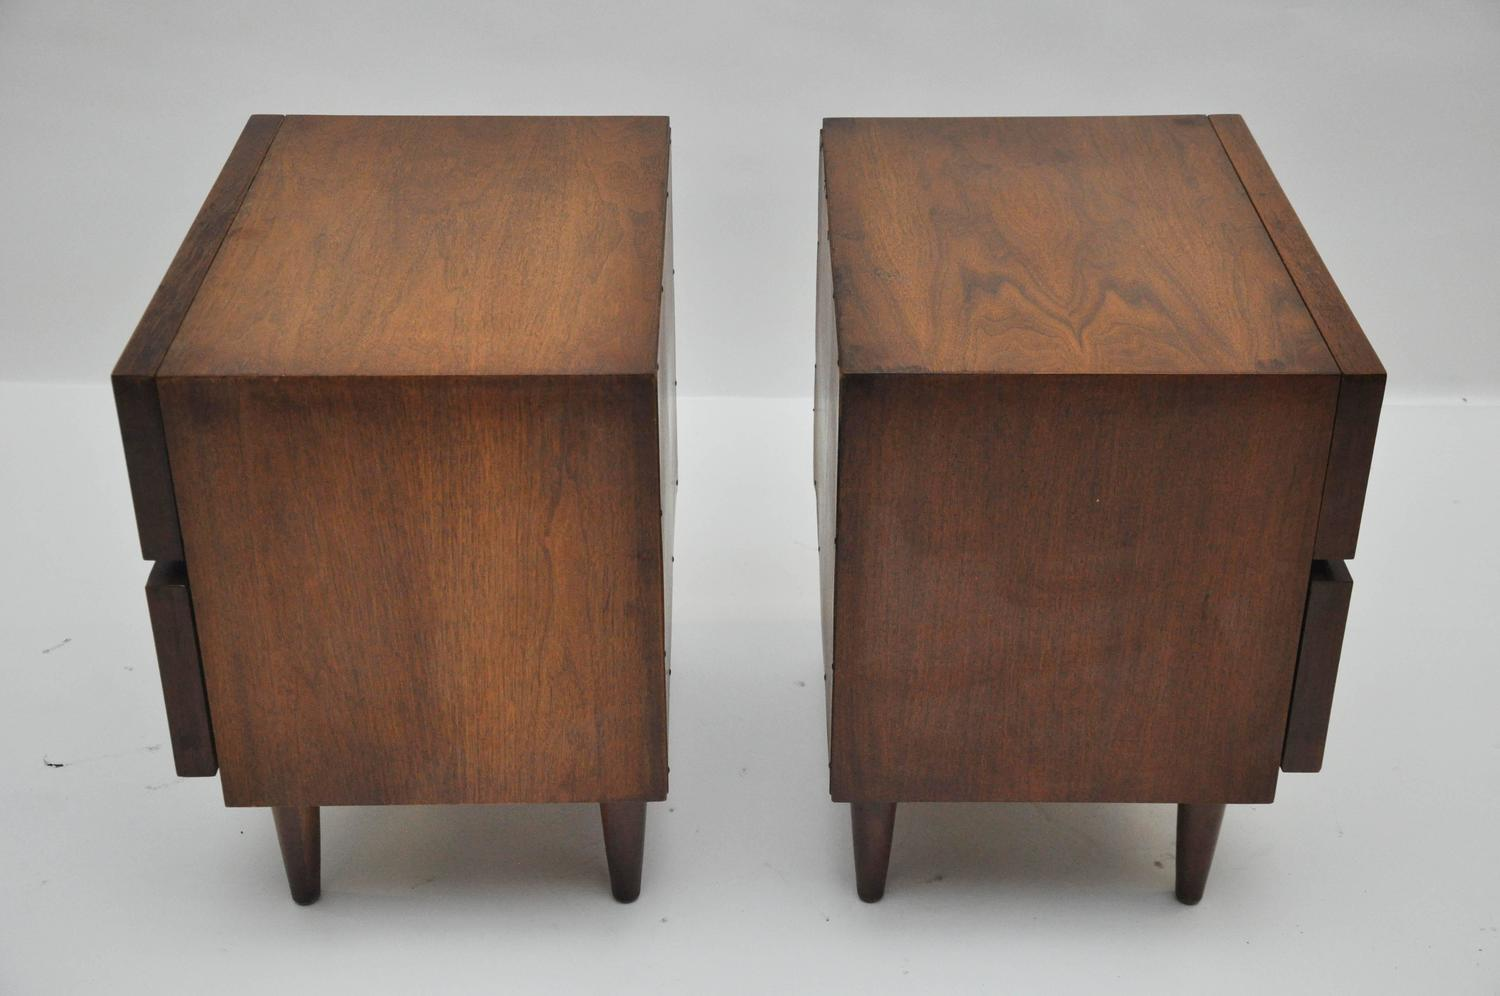 Mid century modern american of martinsville nightstands for Modern nightstands for sale